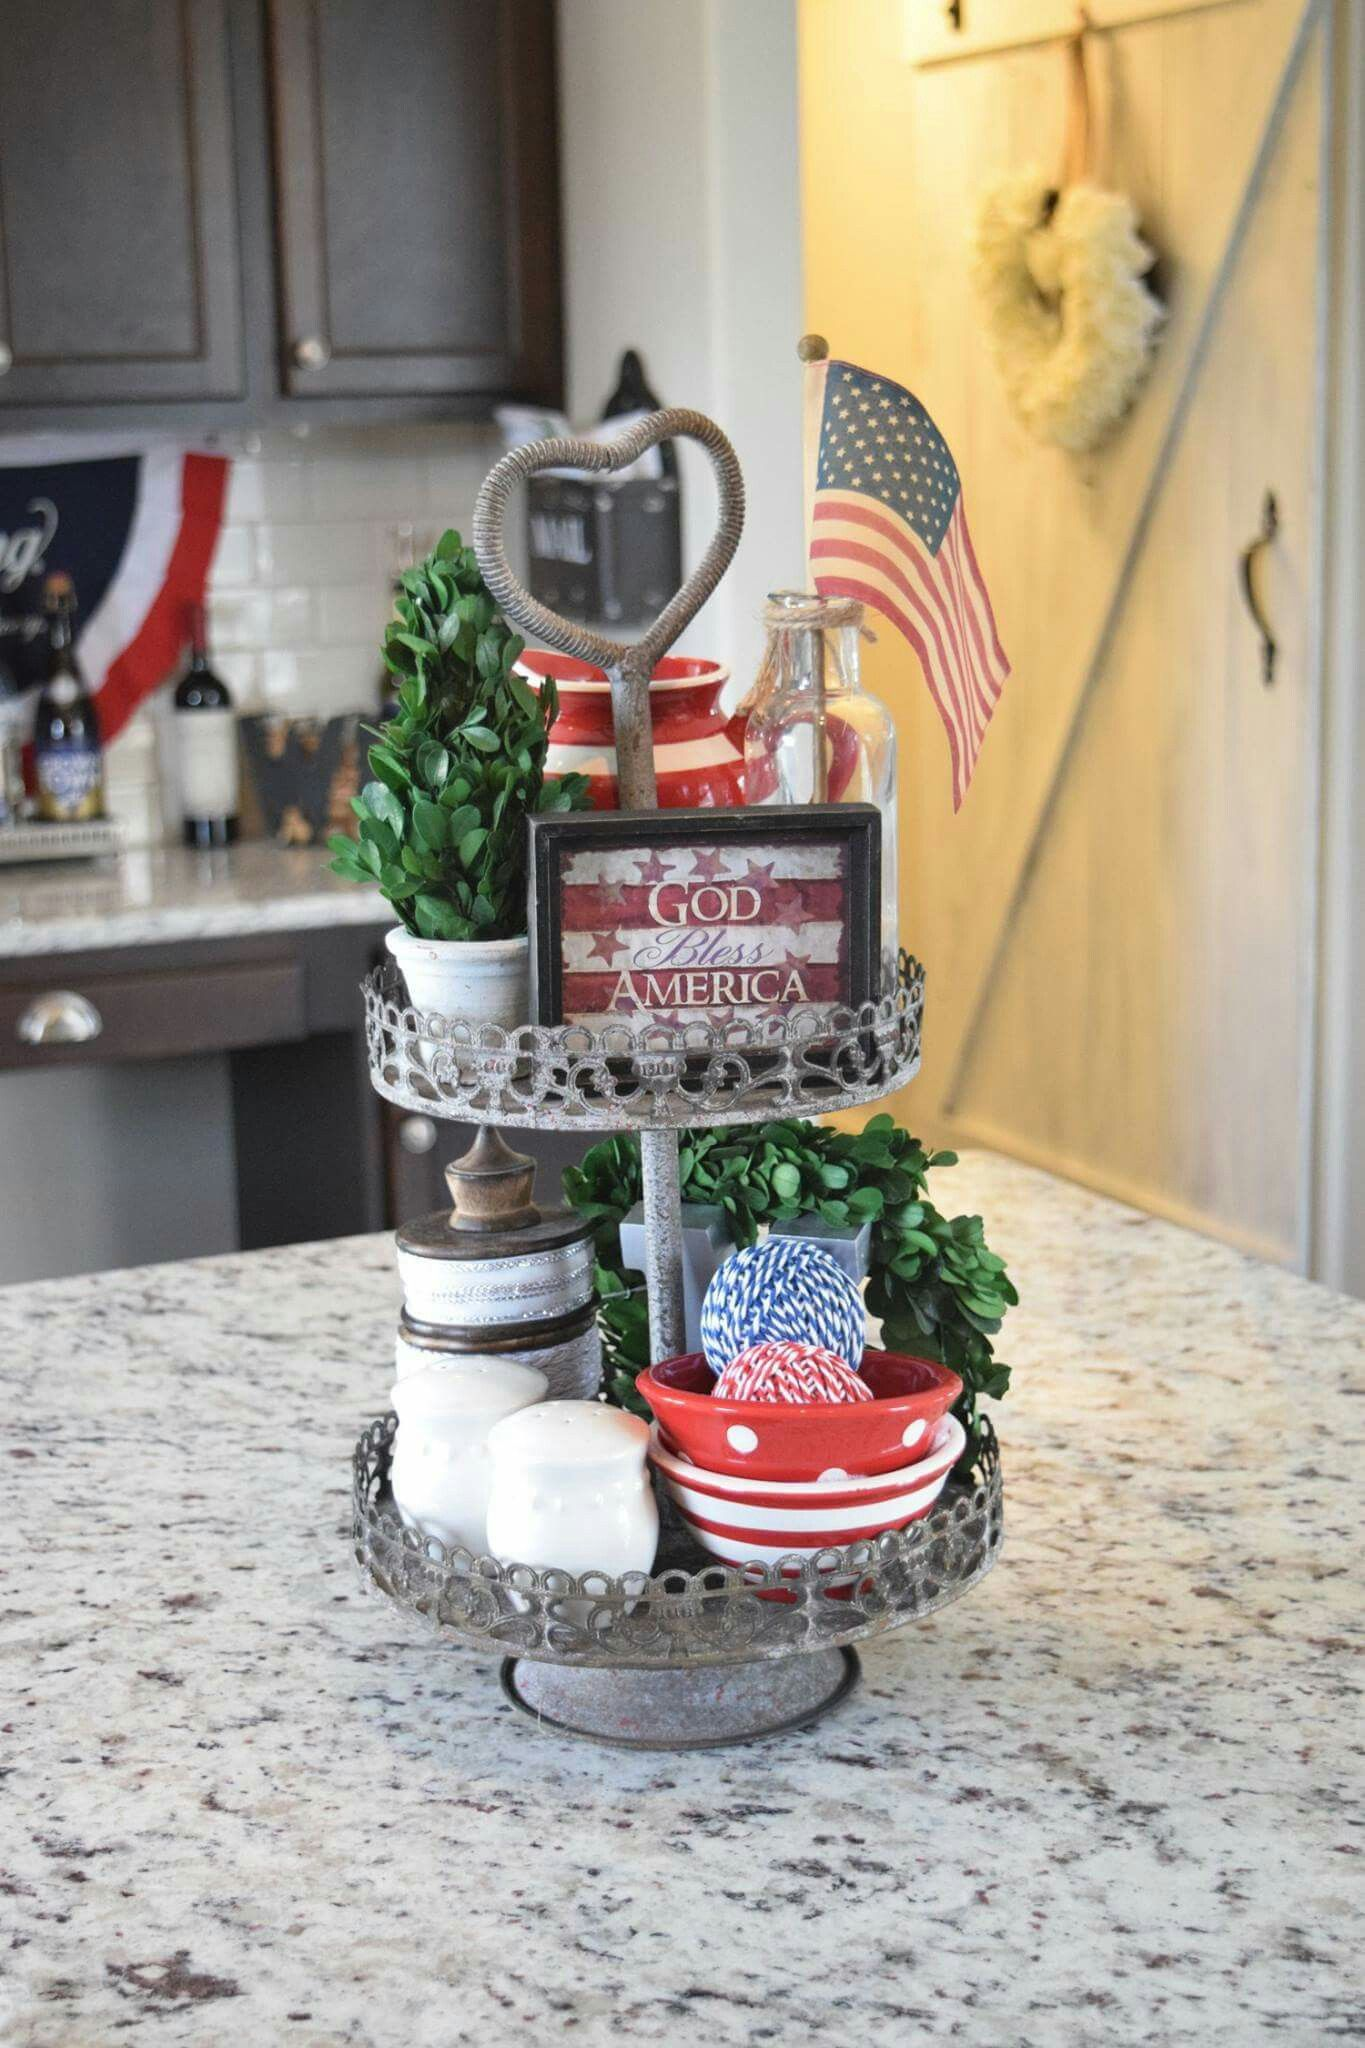 Pin By Audrey C Braun On Tiered Stands Baskets Trays And Boxes 4th Of July Decorations Fourth Of July Decor Tiered Tray